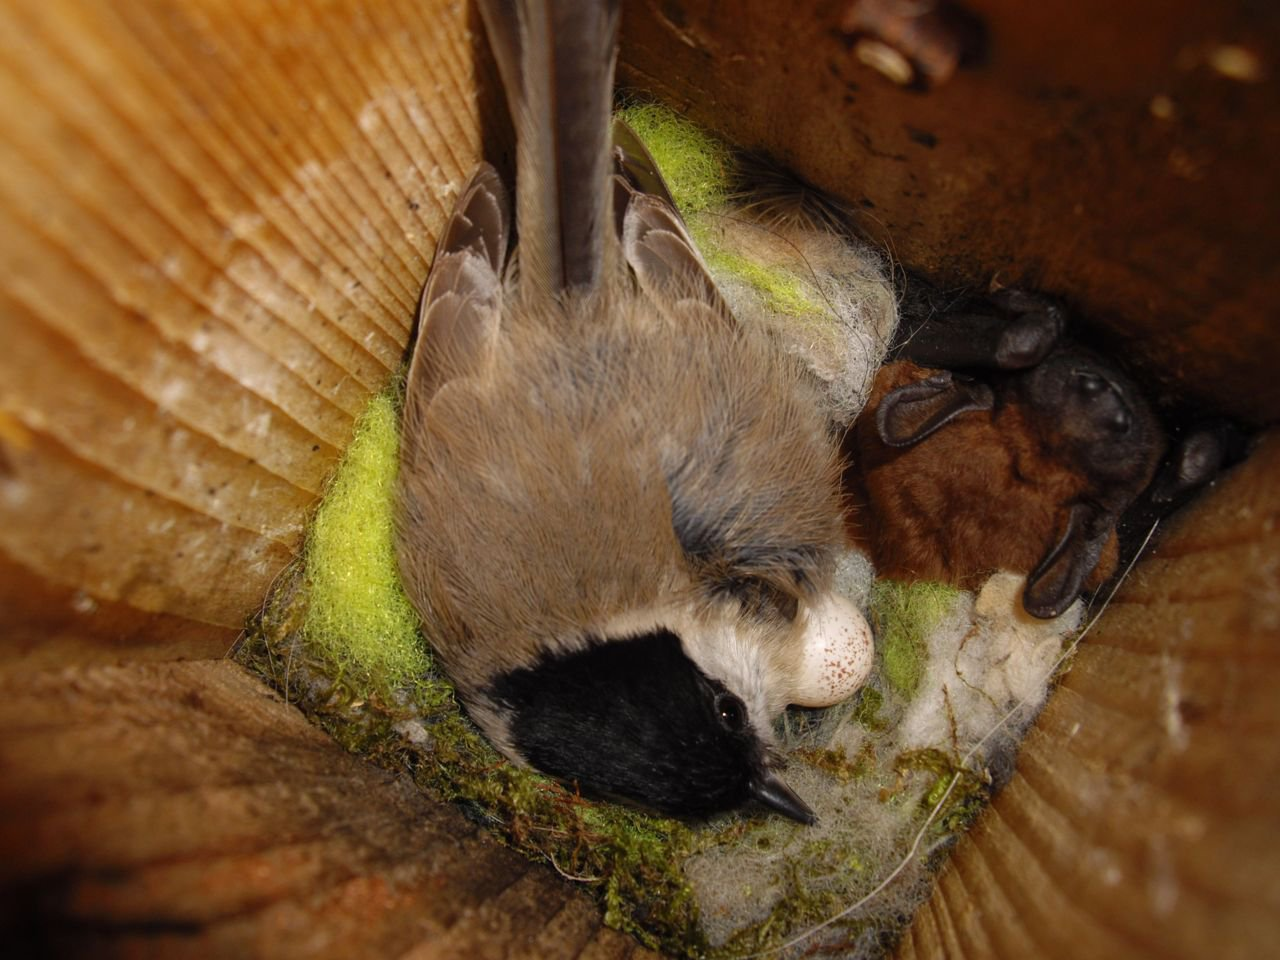 Marsh tit sharing nestbox with bat